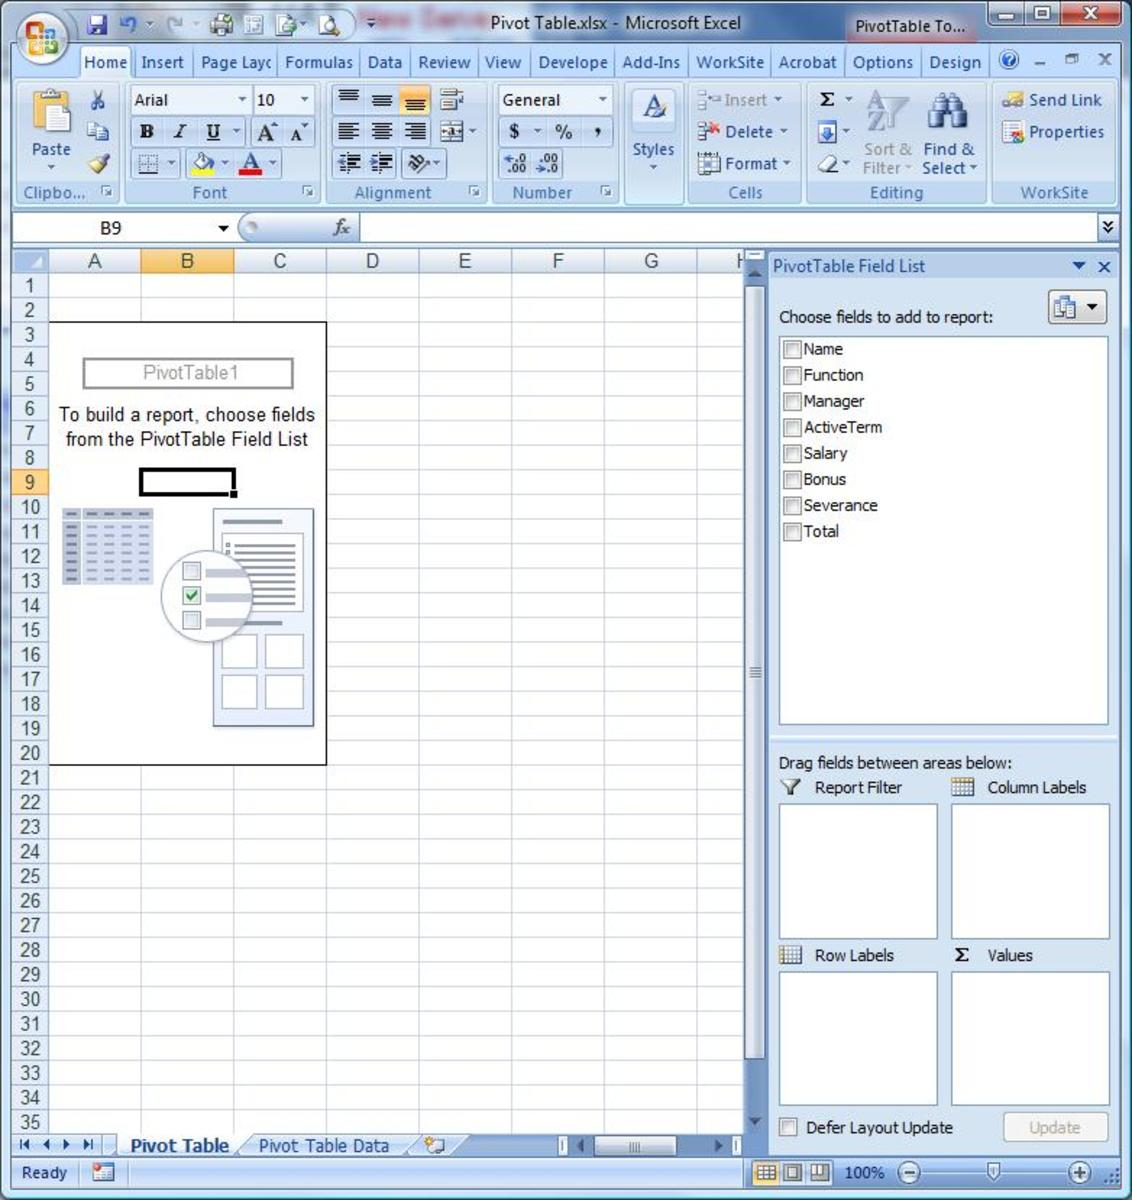 The Pivot Table template wth the field list populated